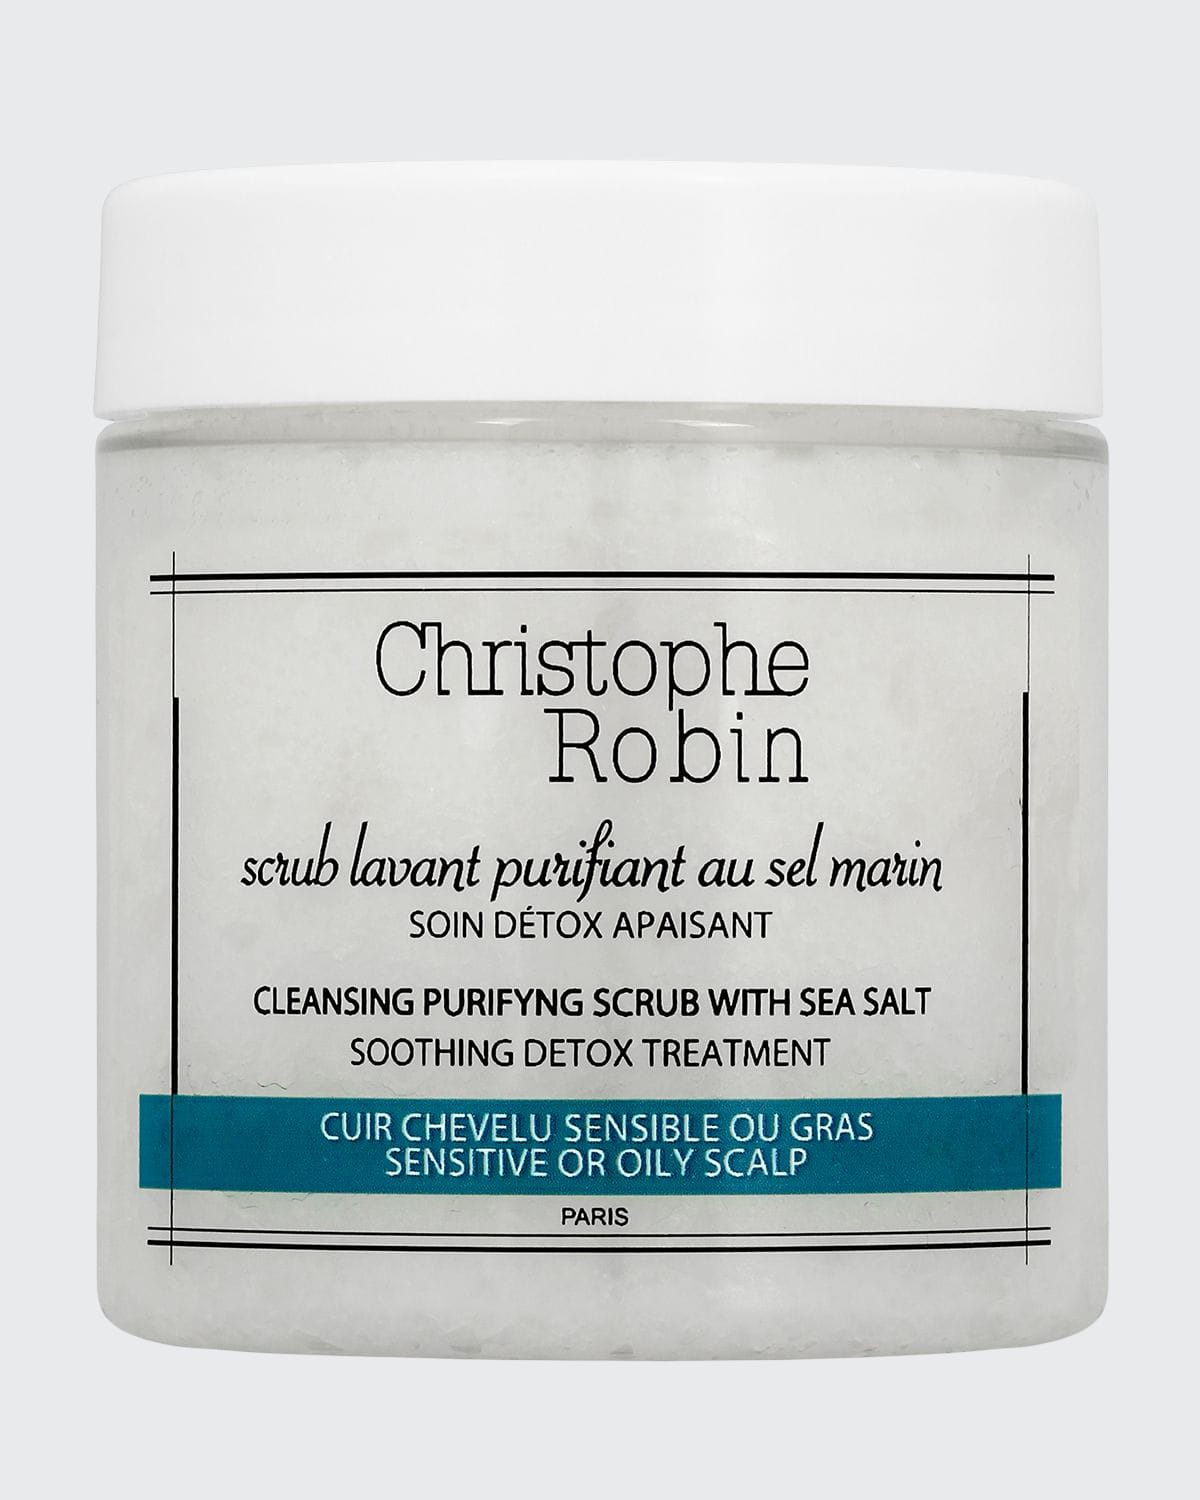 Cleansing Purifying Scrub with Sea Salt Travel Size